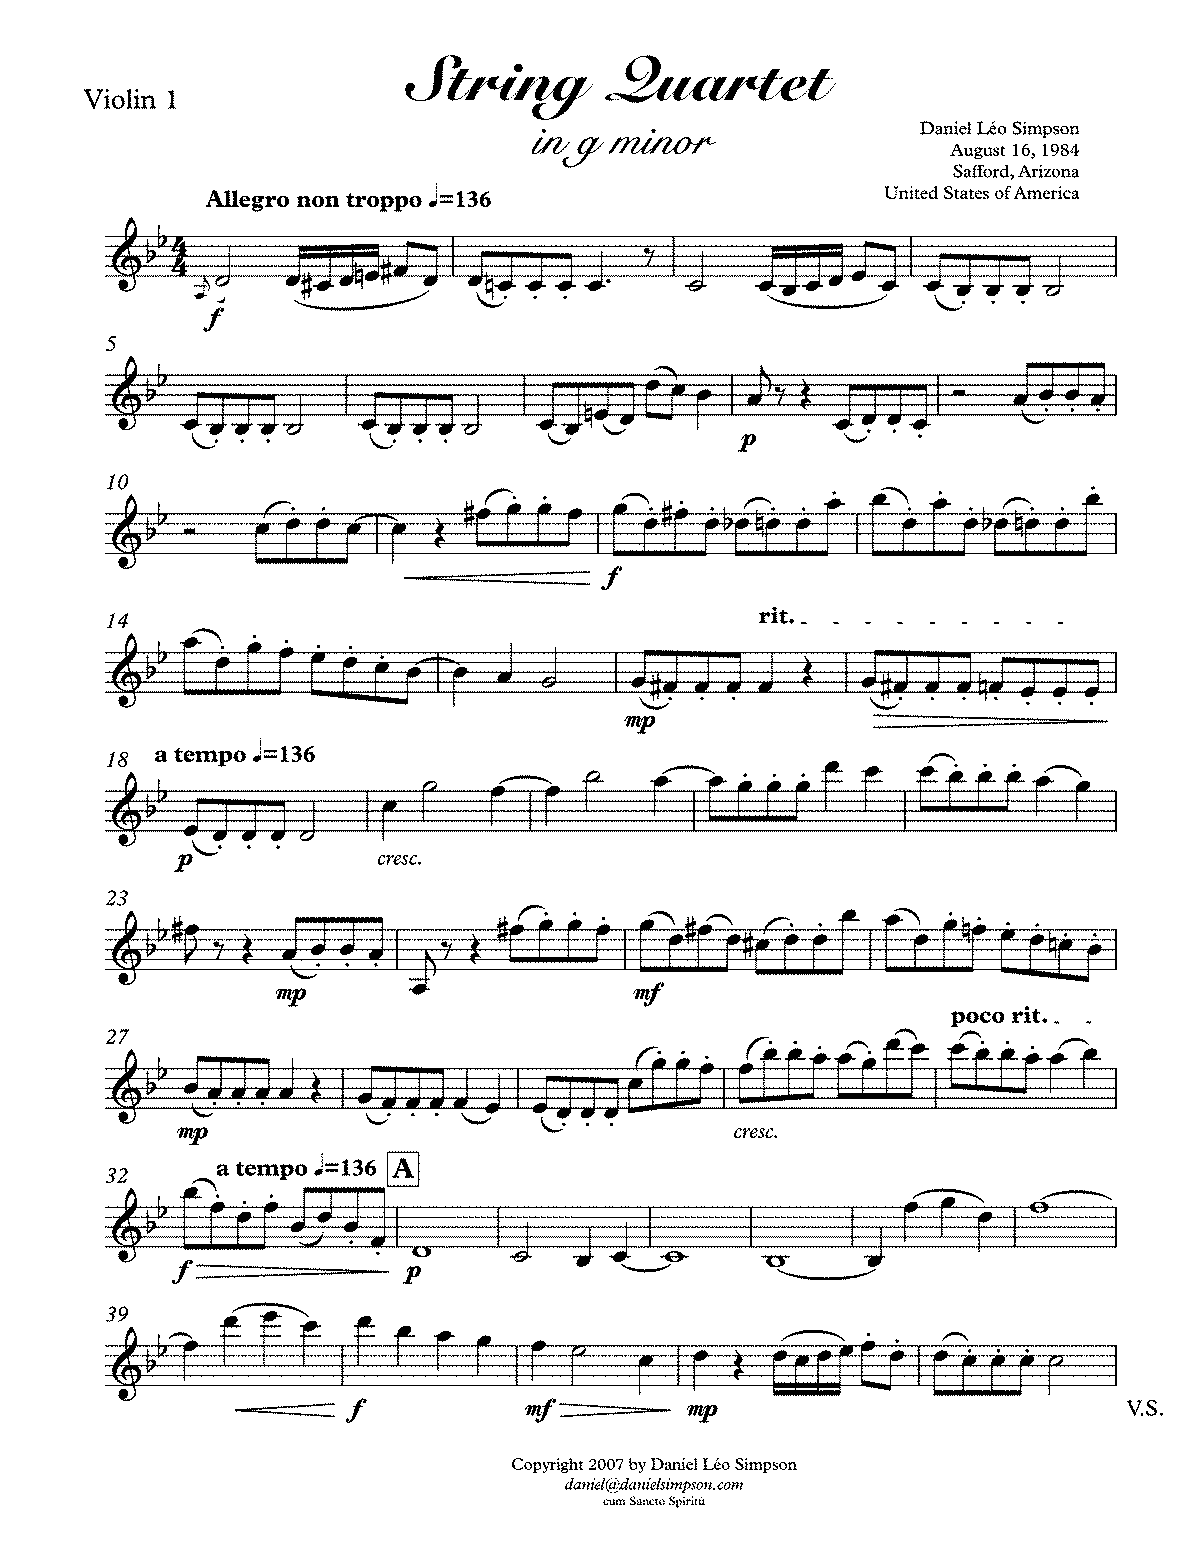 PMLP447153-VIOLIN-01-string-quartet-gm-simpson-imslp-033013.pdf